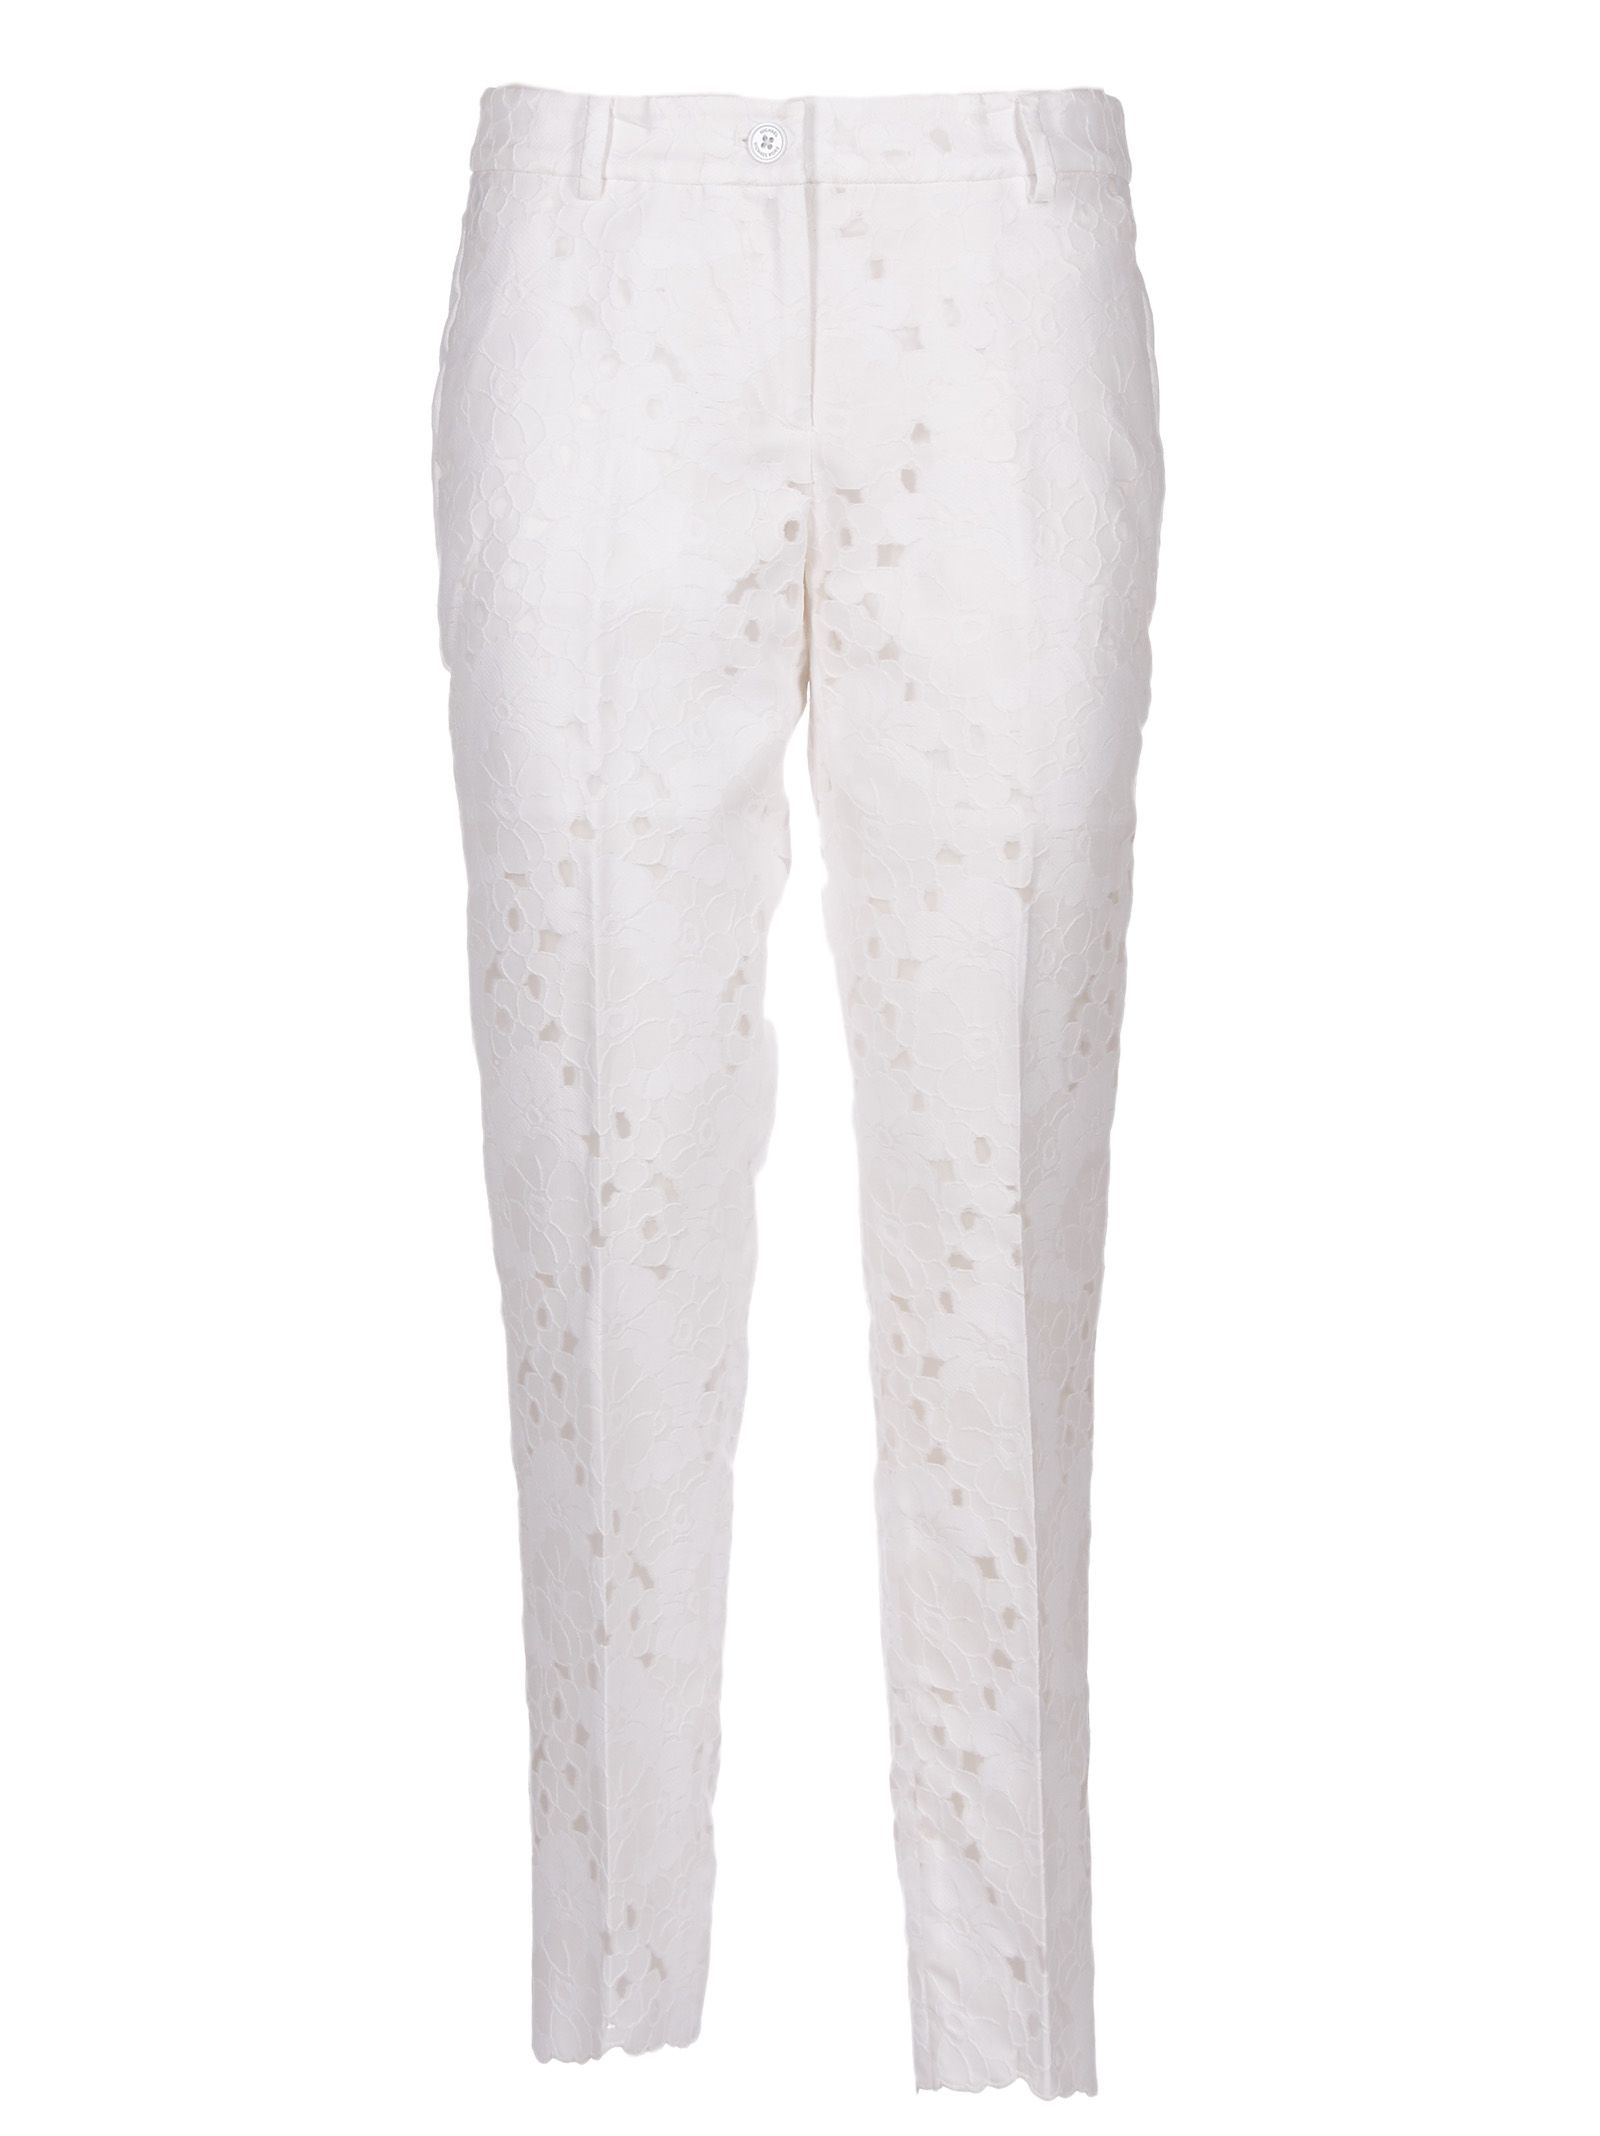 MICHAEL MICHAEL KORS FLORAL PATTERN CROPPED TROUSERS